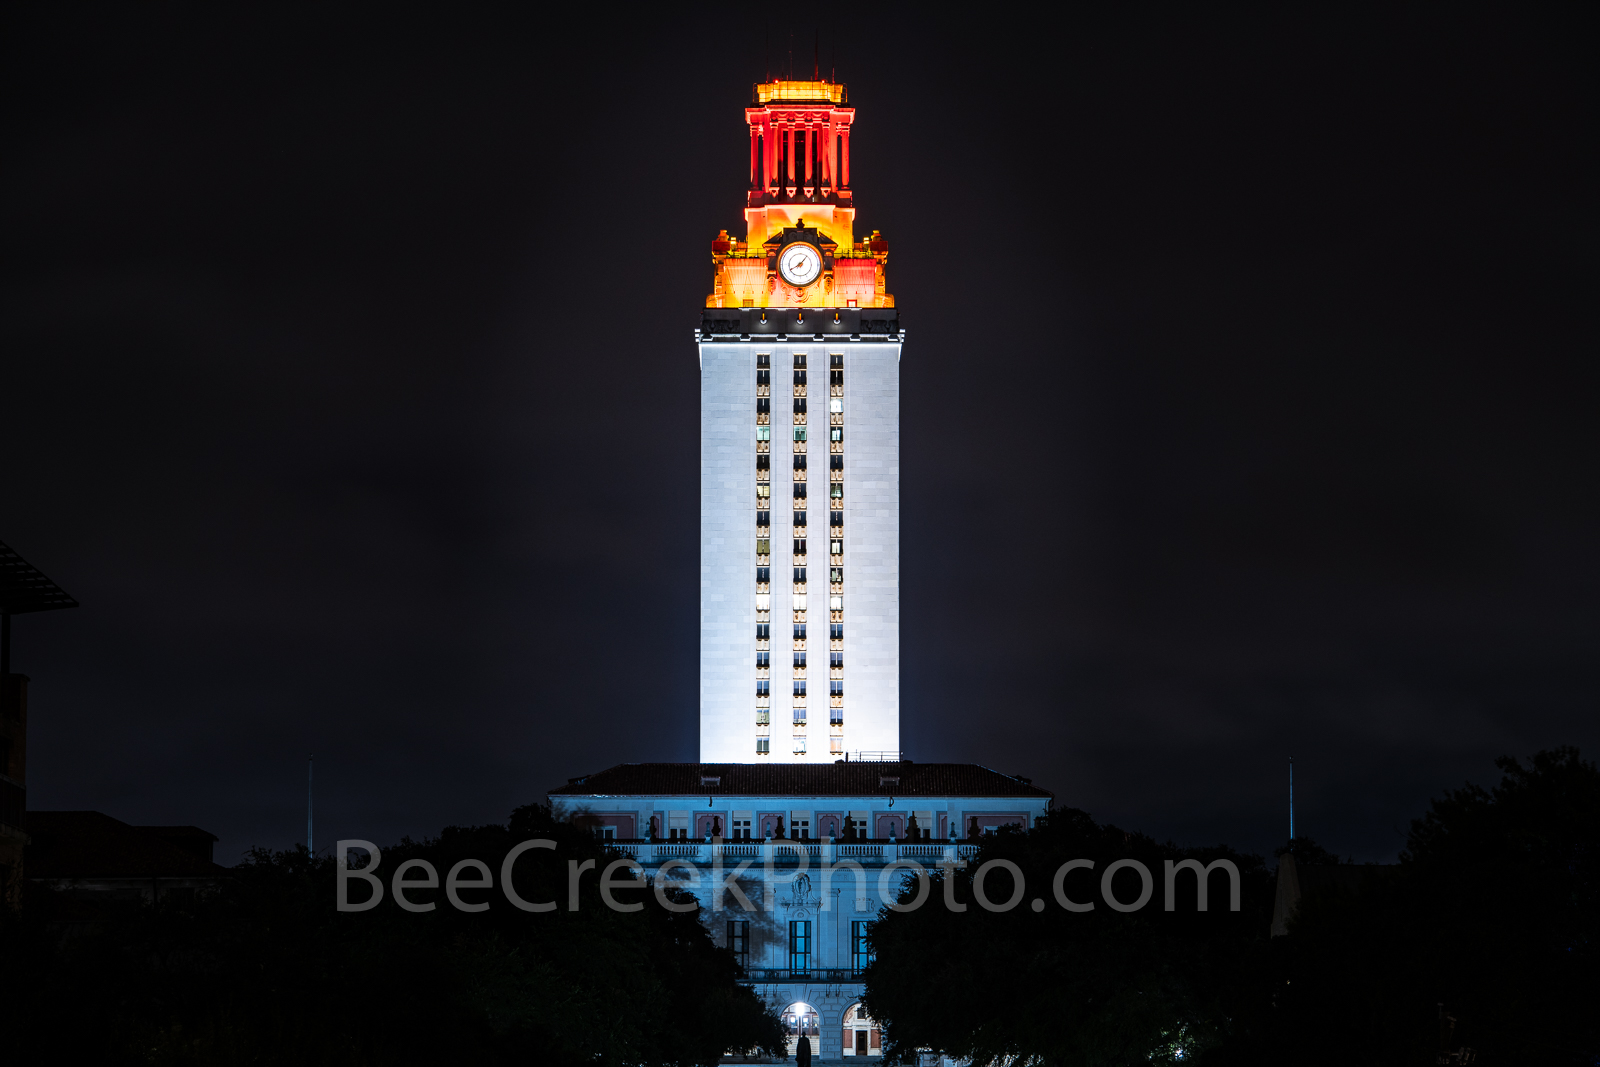 UT Tower Win - A little closer view of the UT Tower in downtown Austin which is a landmark with the top of the tower orange....